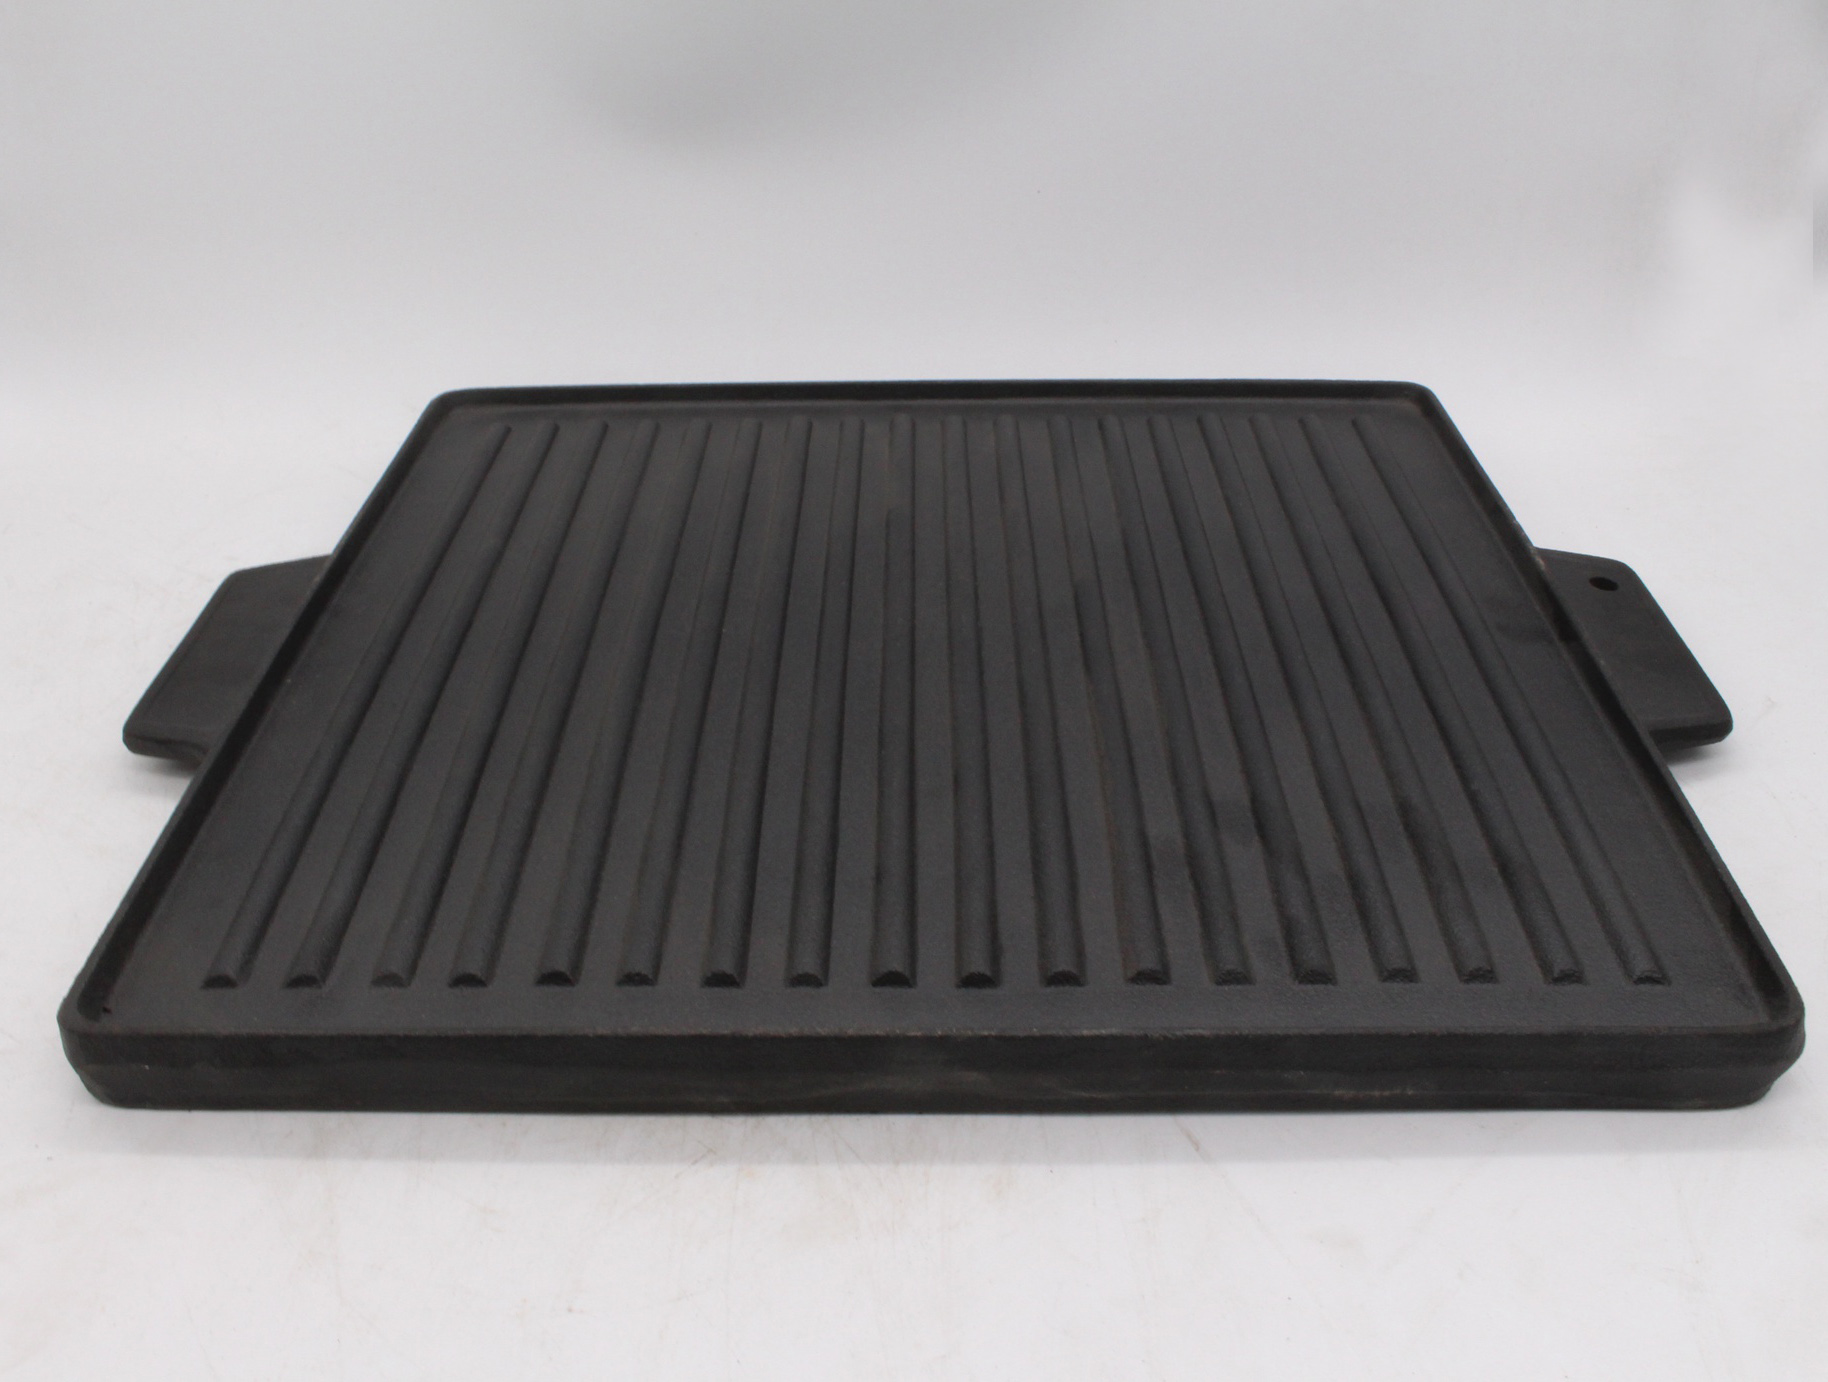 Cast iron griddle for bbq